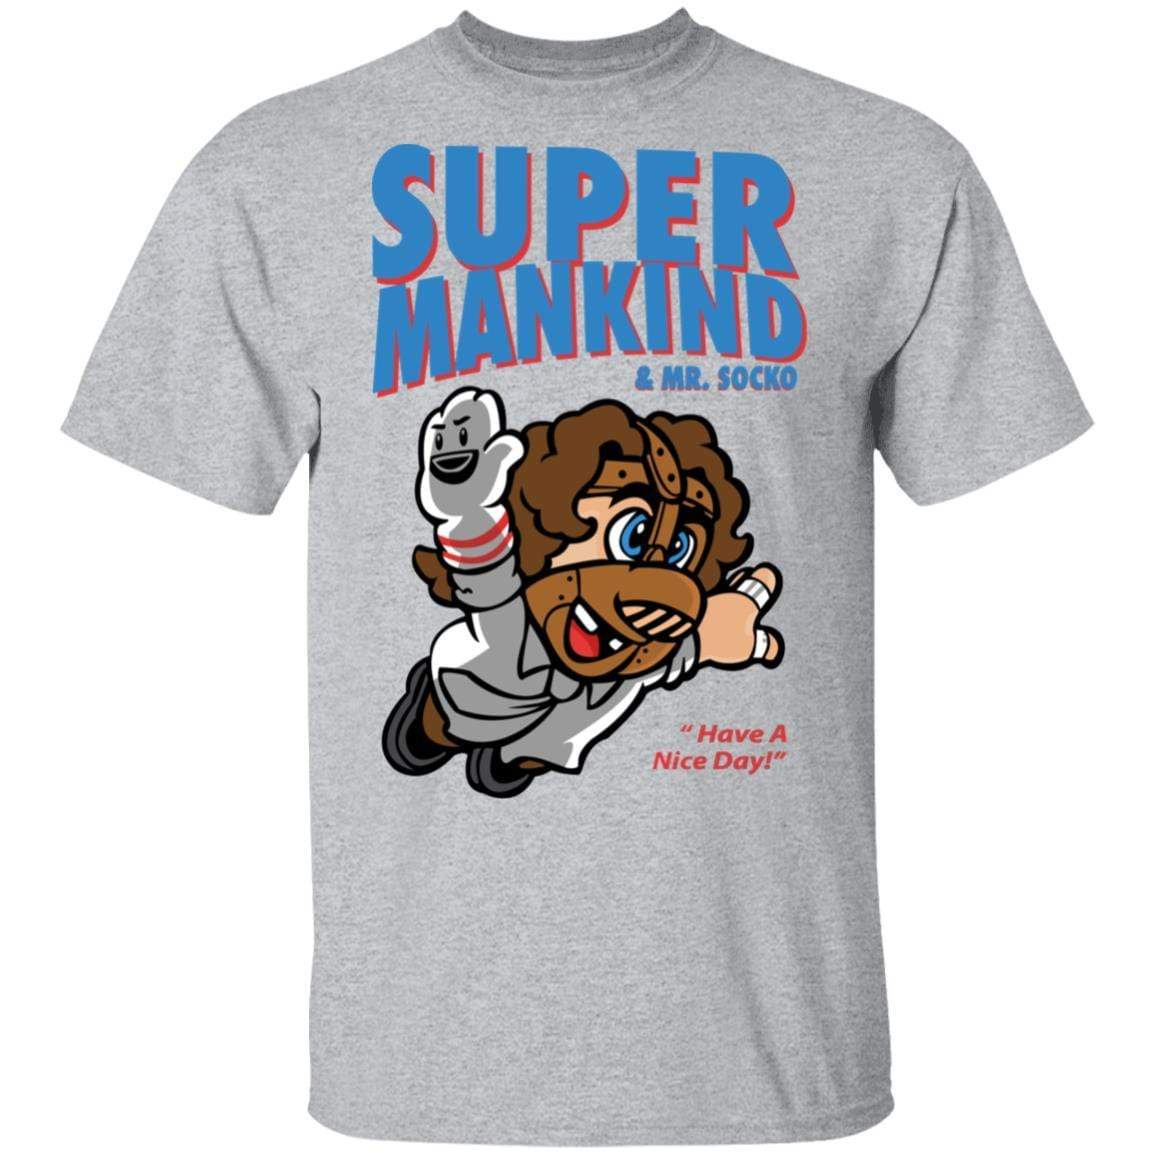 Super Mankind & Mr Socko Have A Nice Day T-Shirts, Hoodies 1049-9972-91844582-48200 - Tee Ript